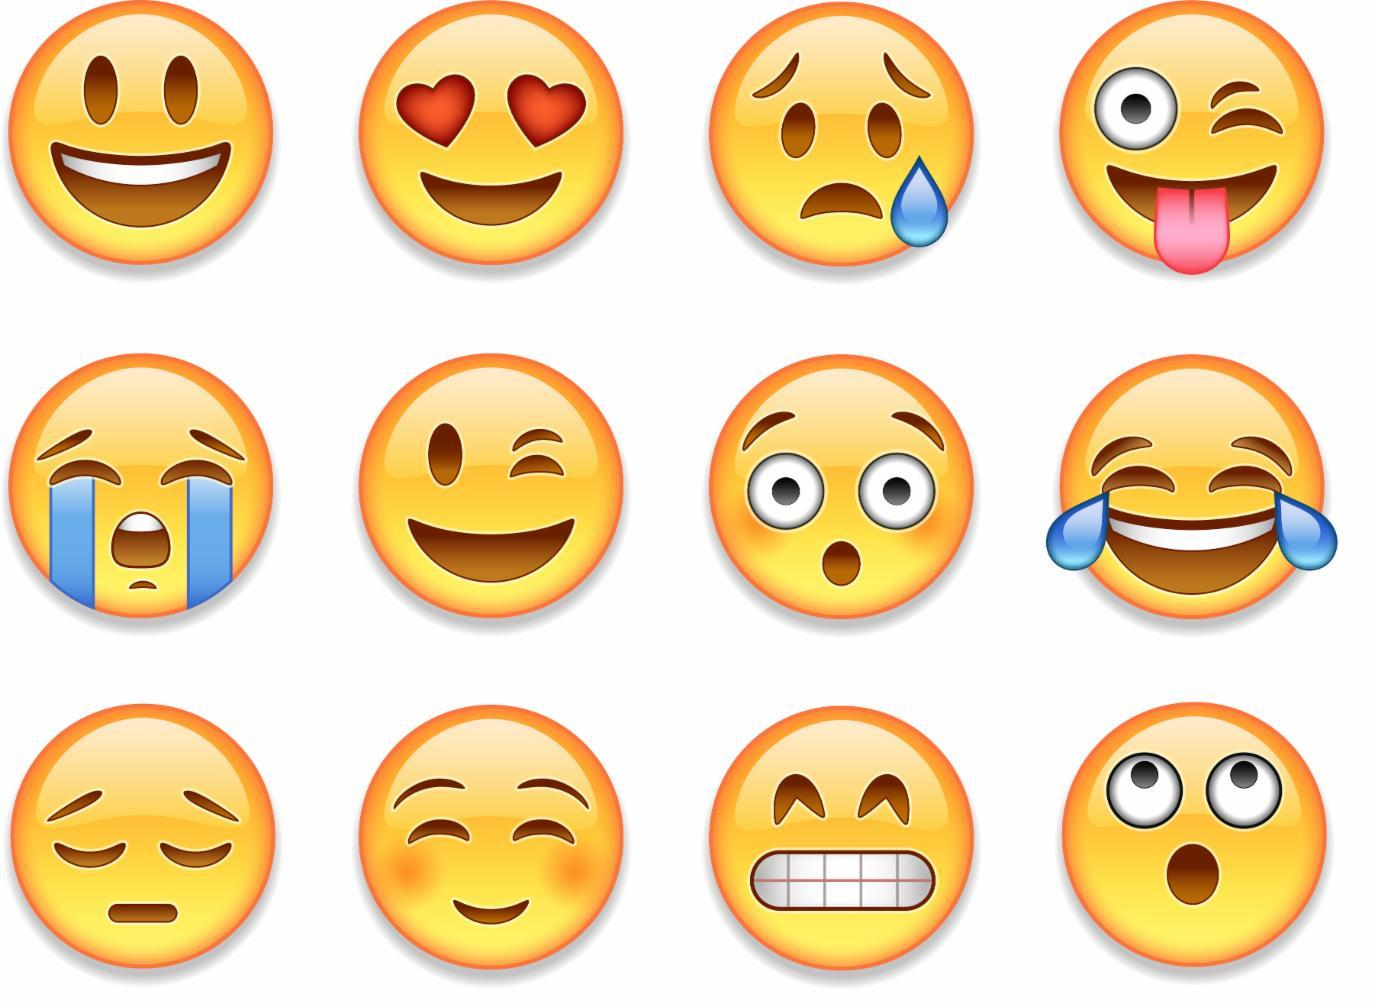 What is your least favorite emoji?